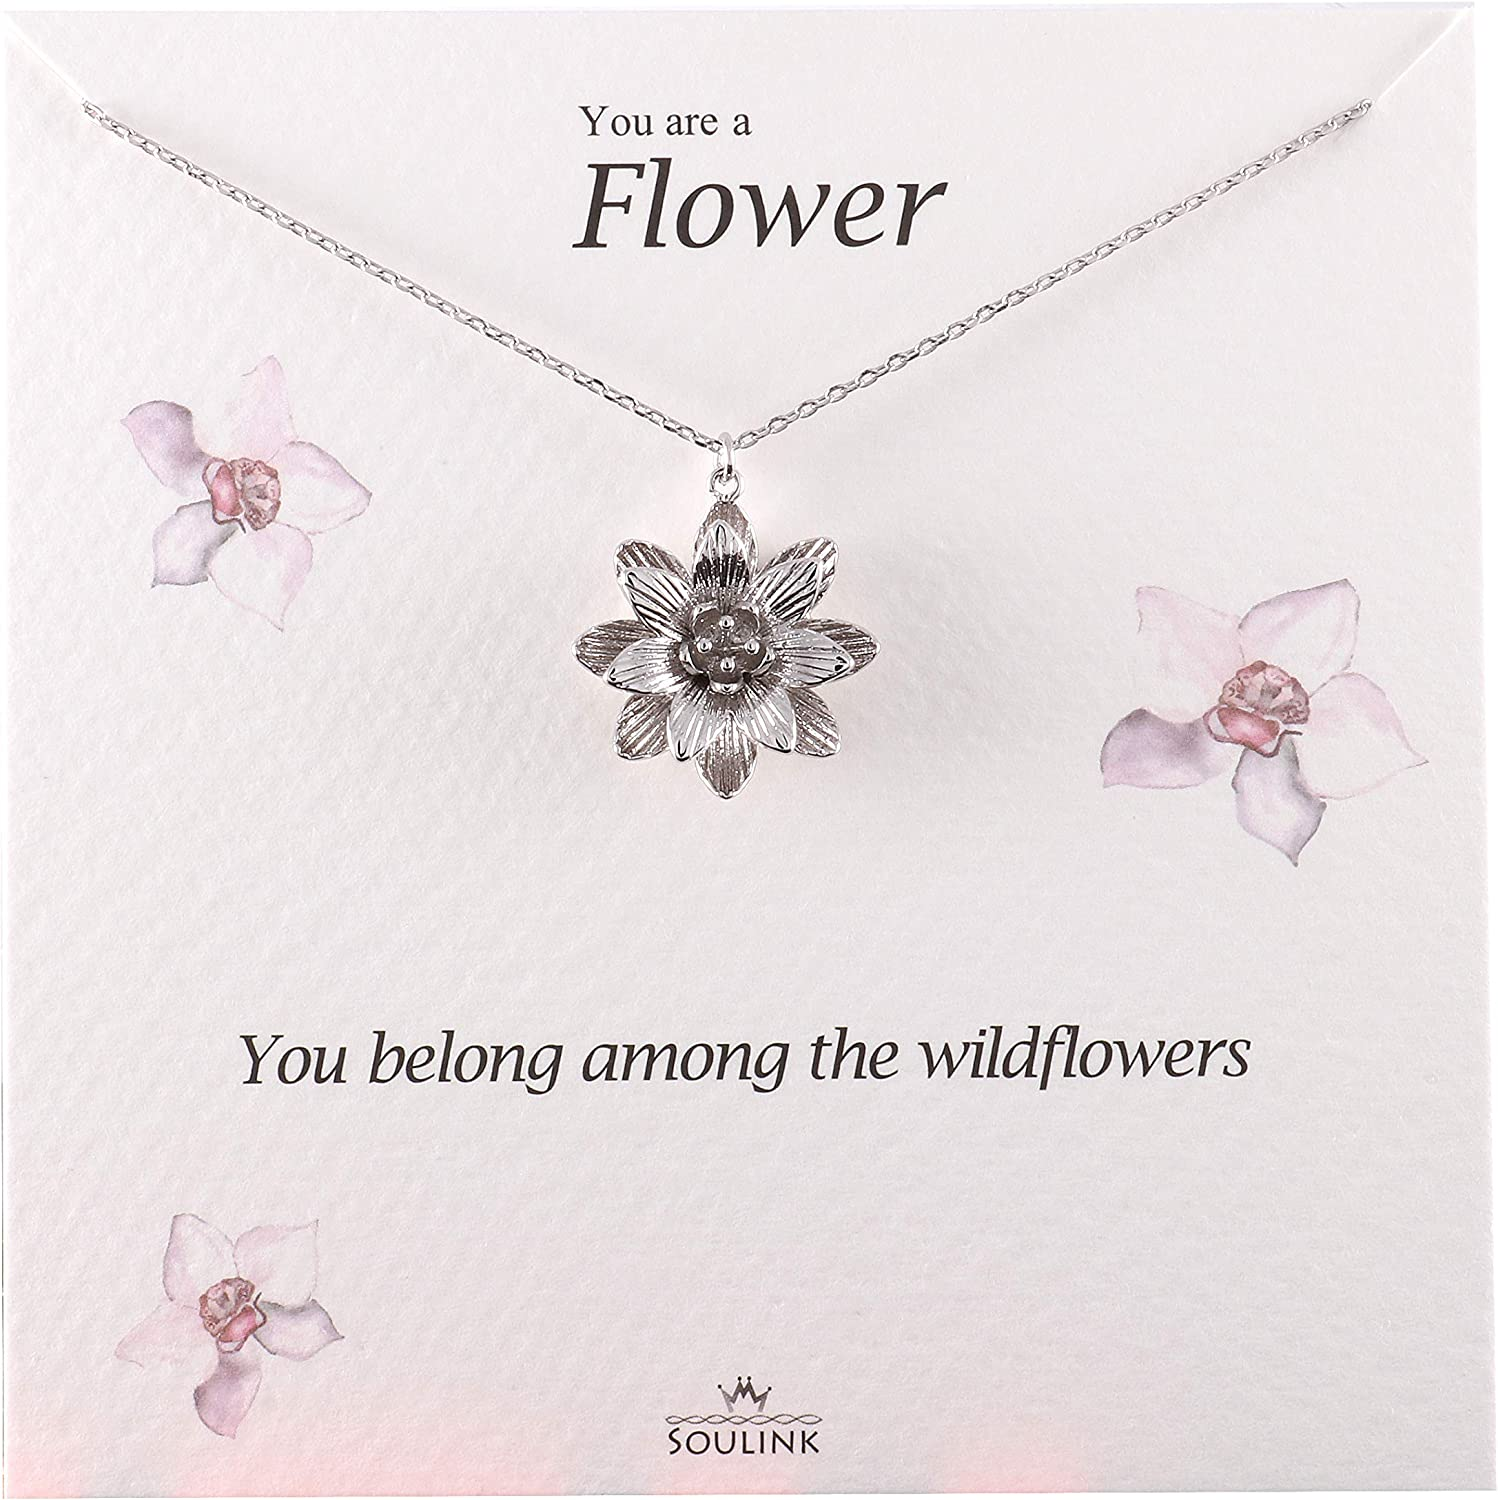 YFN Yoga Lotus Flower Pendant Necklace with Om Symbol Sterling Silver with Pear Shape Cubic Zirconial Lotus Flower Jewelry Earrings for Mom Women Wife Mother Day Birthday Gift Lotus Necklace